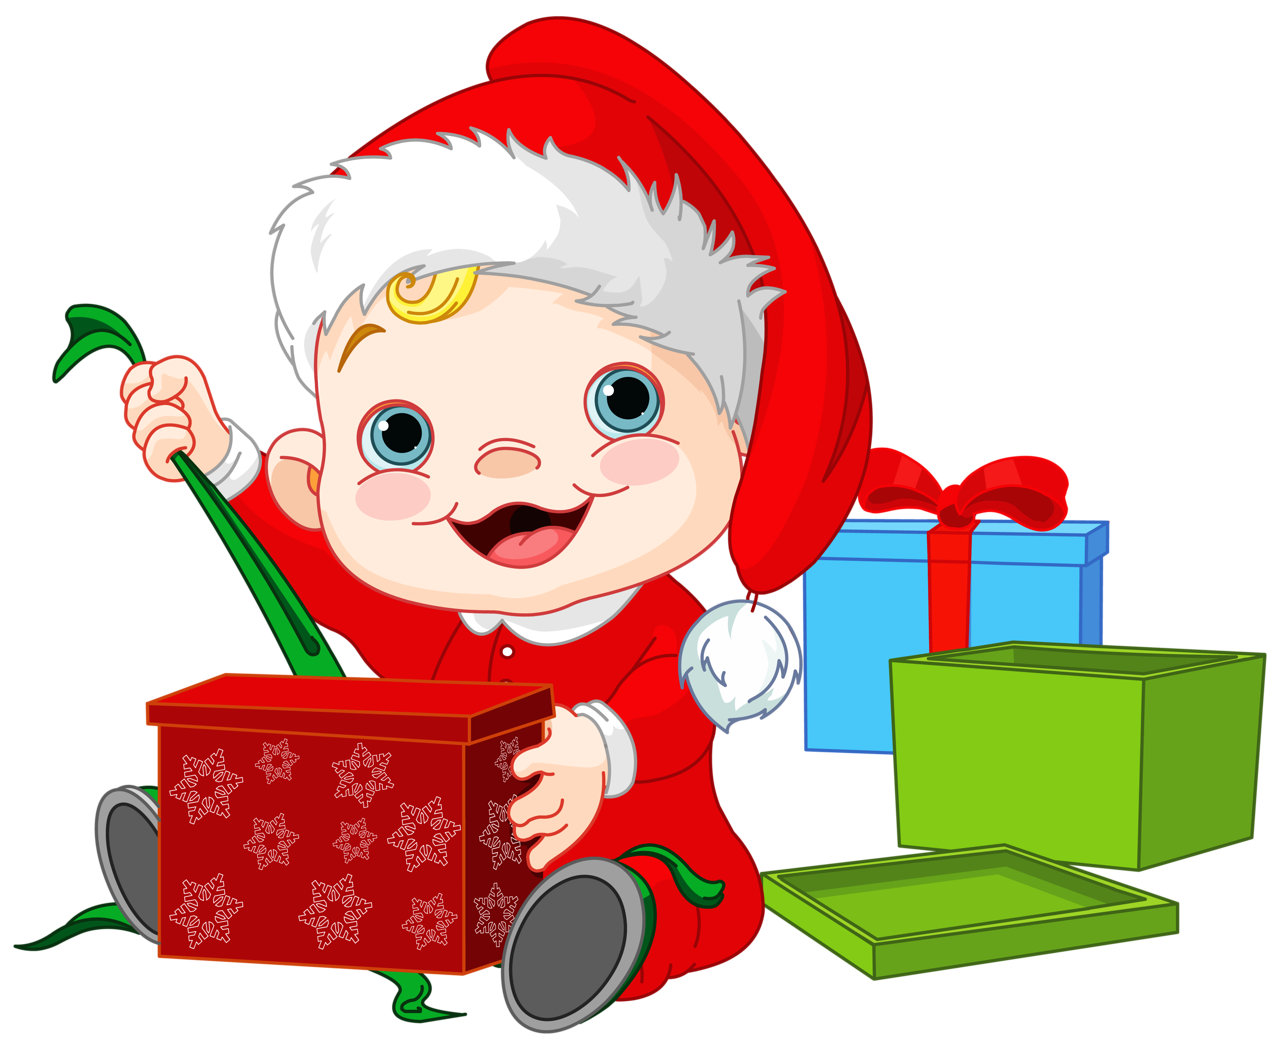 Christmas baby clipart picture black and white stock Baby Christmas Clipart at GetDrawings.com | Free for personal use ... picture black and white stock